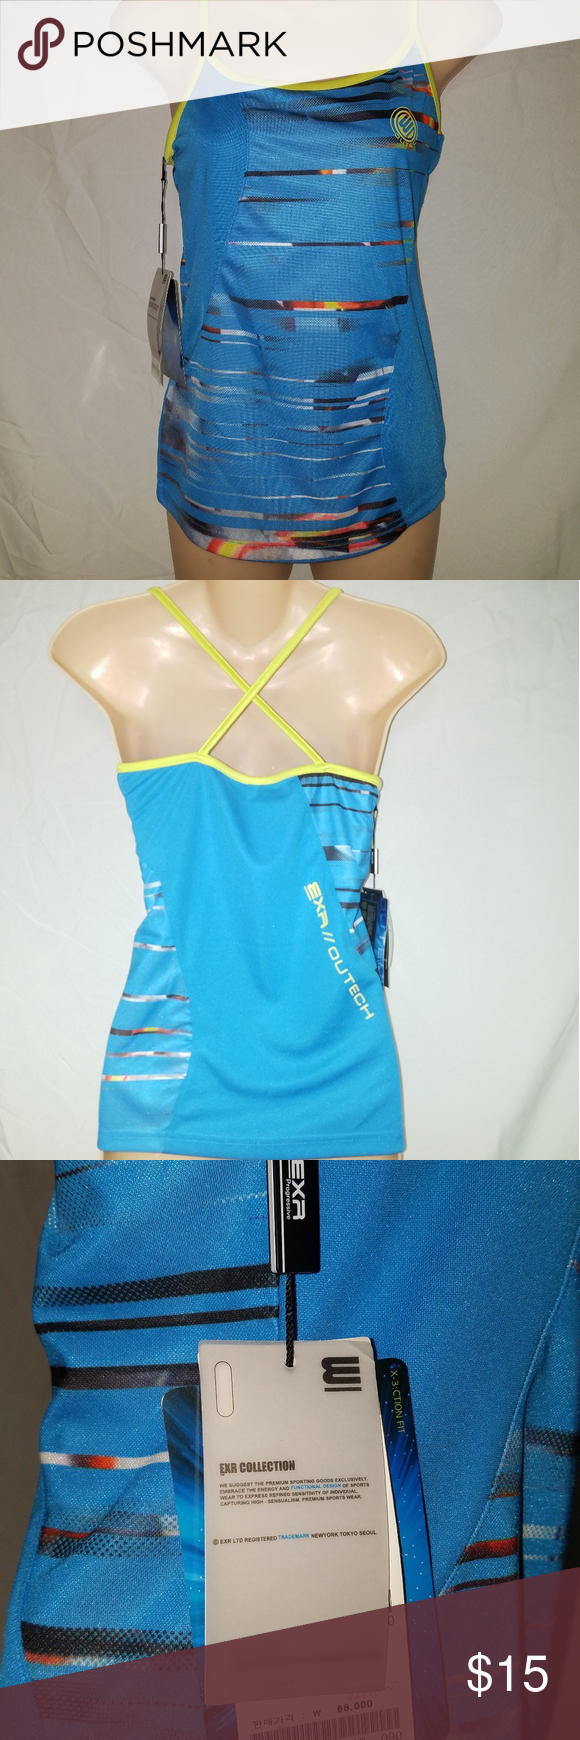 Exr Progressive Collection Active Wear Top New Activewear To By Exr Racing Color Neon Green Baby Blue Exr Collection Active Wear Tops Active Wear How To Wear